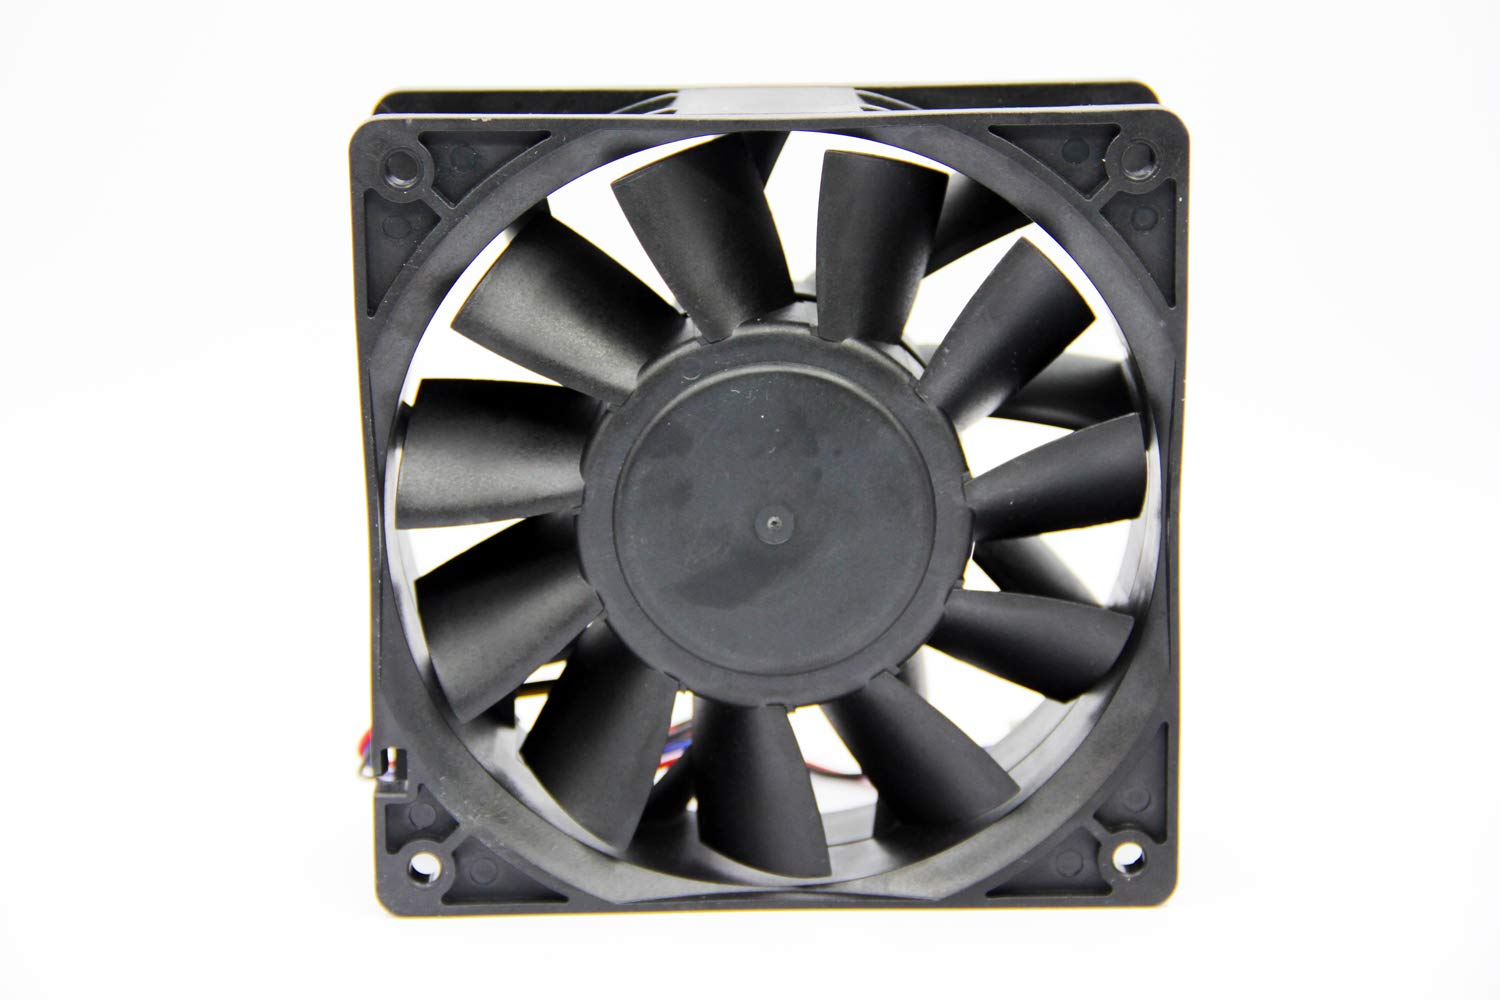 59dBA,Dual Ball Bearing 3-Wire 3-Pin Connector Asia New Power New FFB1212EHE 120x120x38mm PWM Case Cooling Fan,190CFM,4000RPM